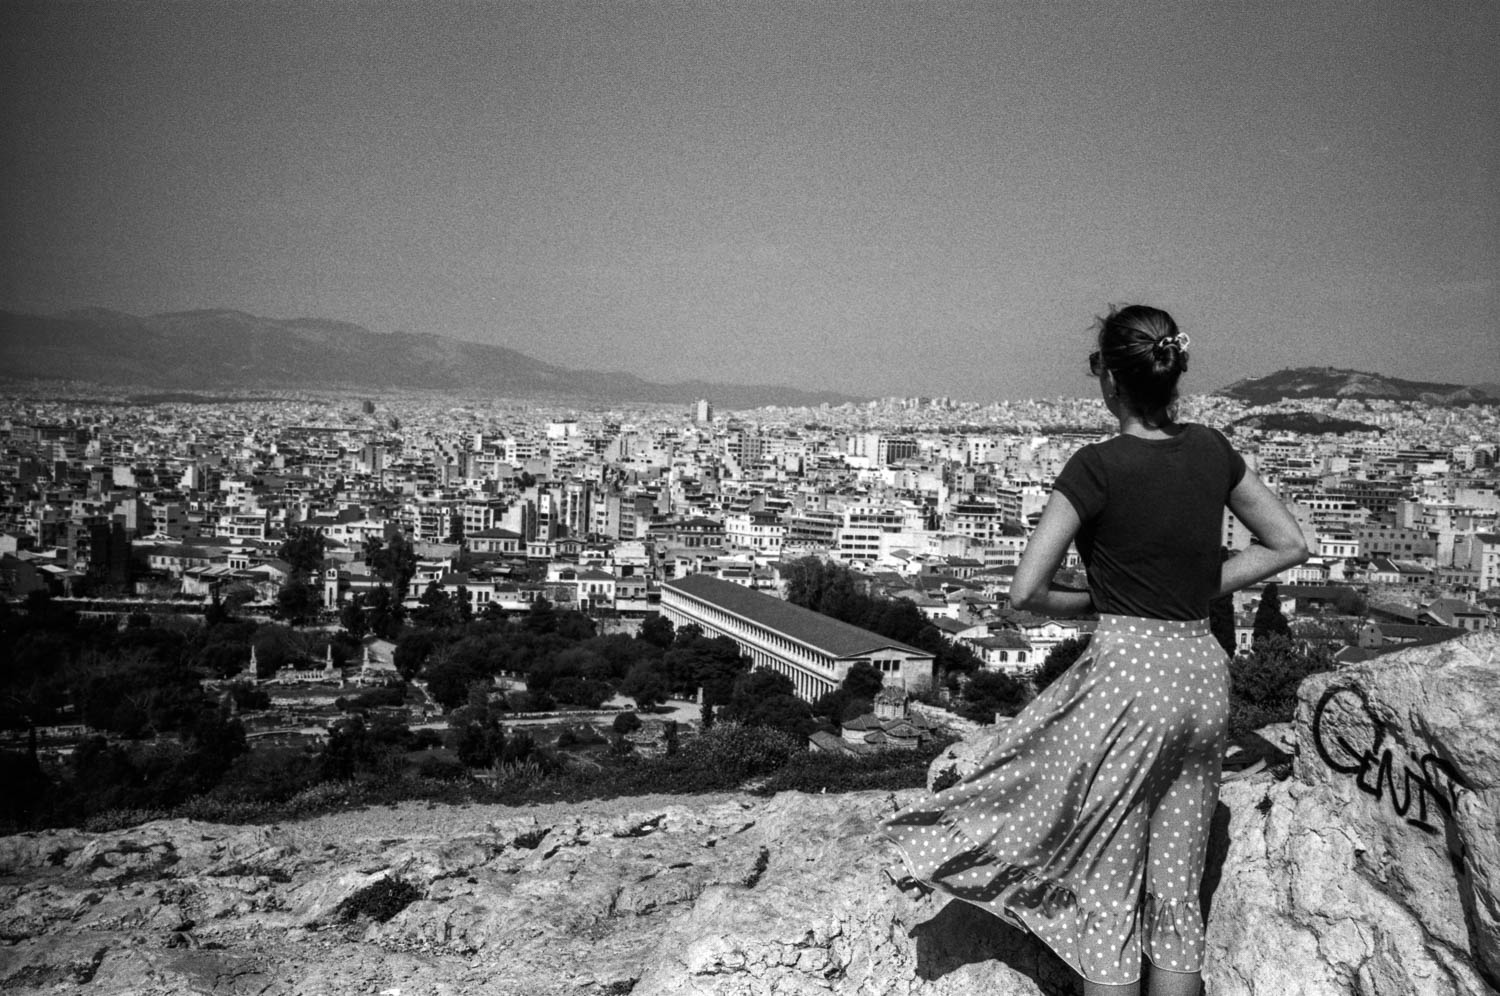 A tourist observes a panoramic view of Athens from the hight of the Acropolis.